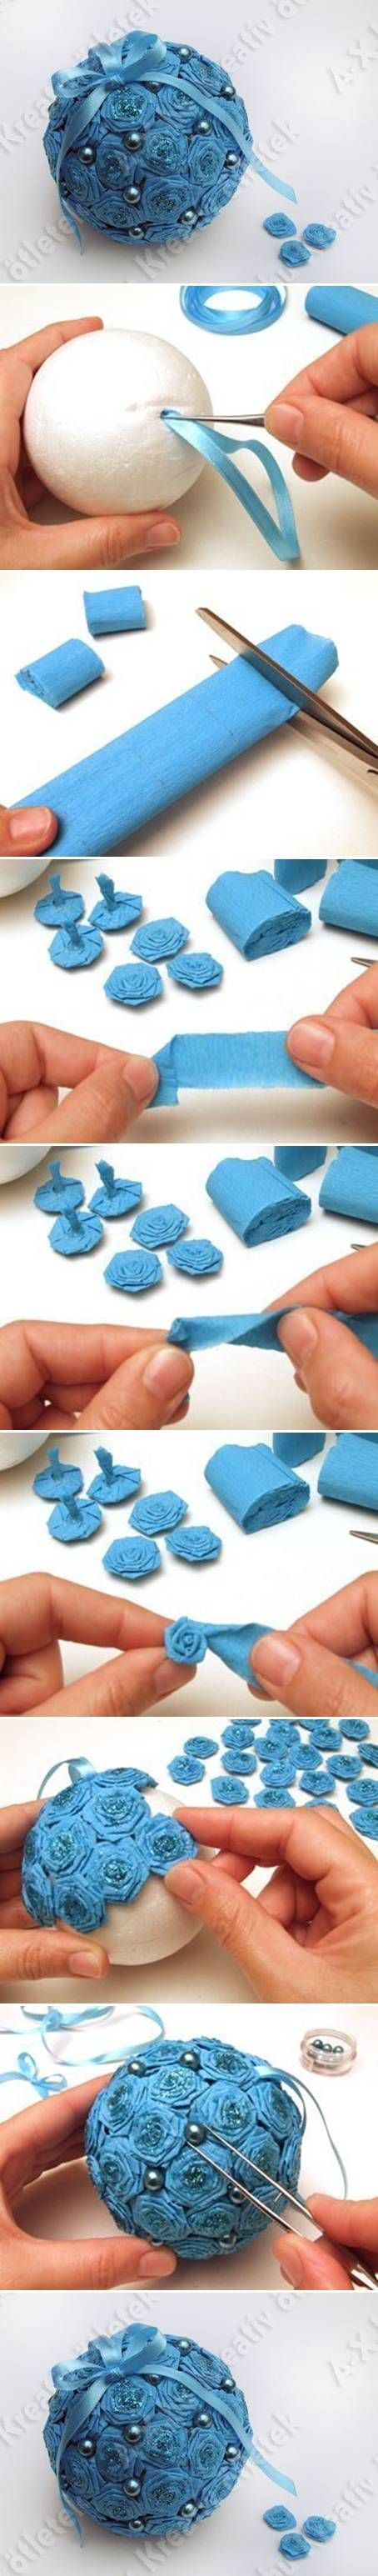 How to make crepe paper flower ball step by step diy tutorial how to make crepe paper flower ball step by step diy tutorial instructions how to instructions mightylinksfo